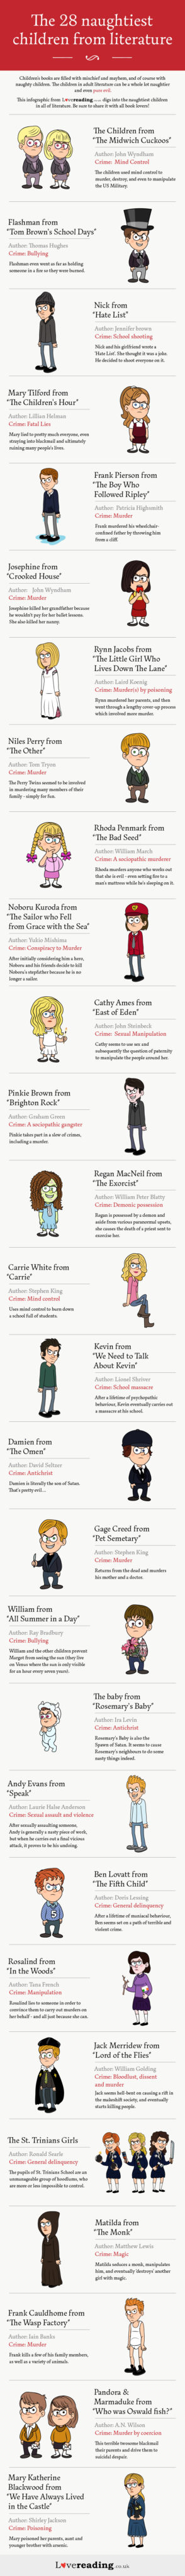 Infographic: The 28 Naughtiest Children from Literature Infographic